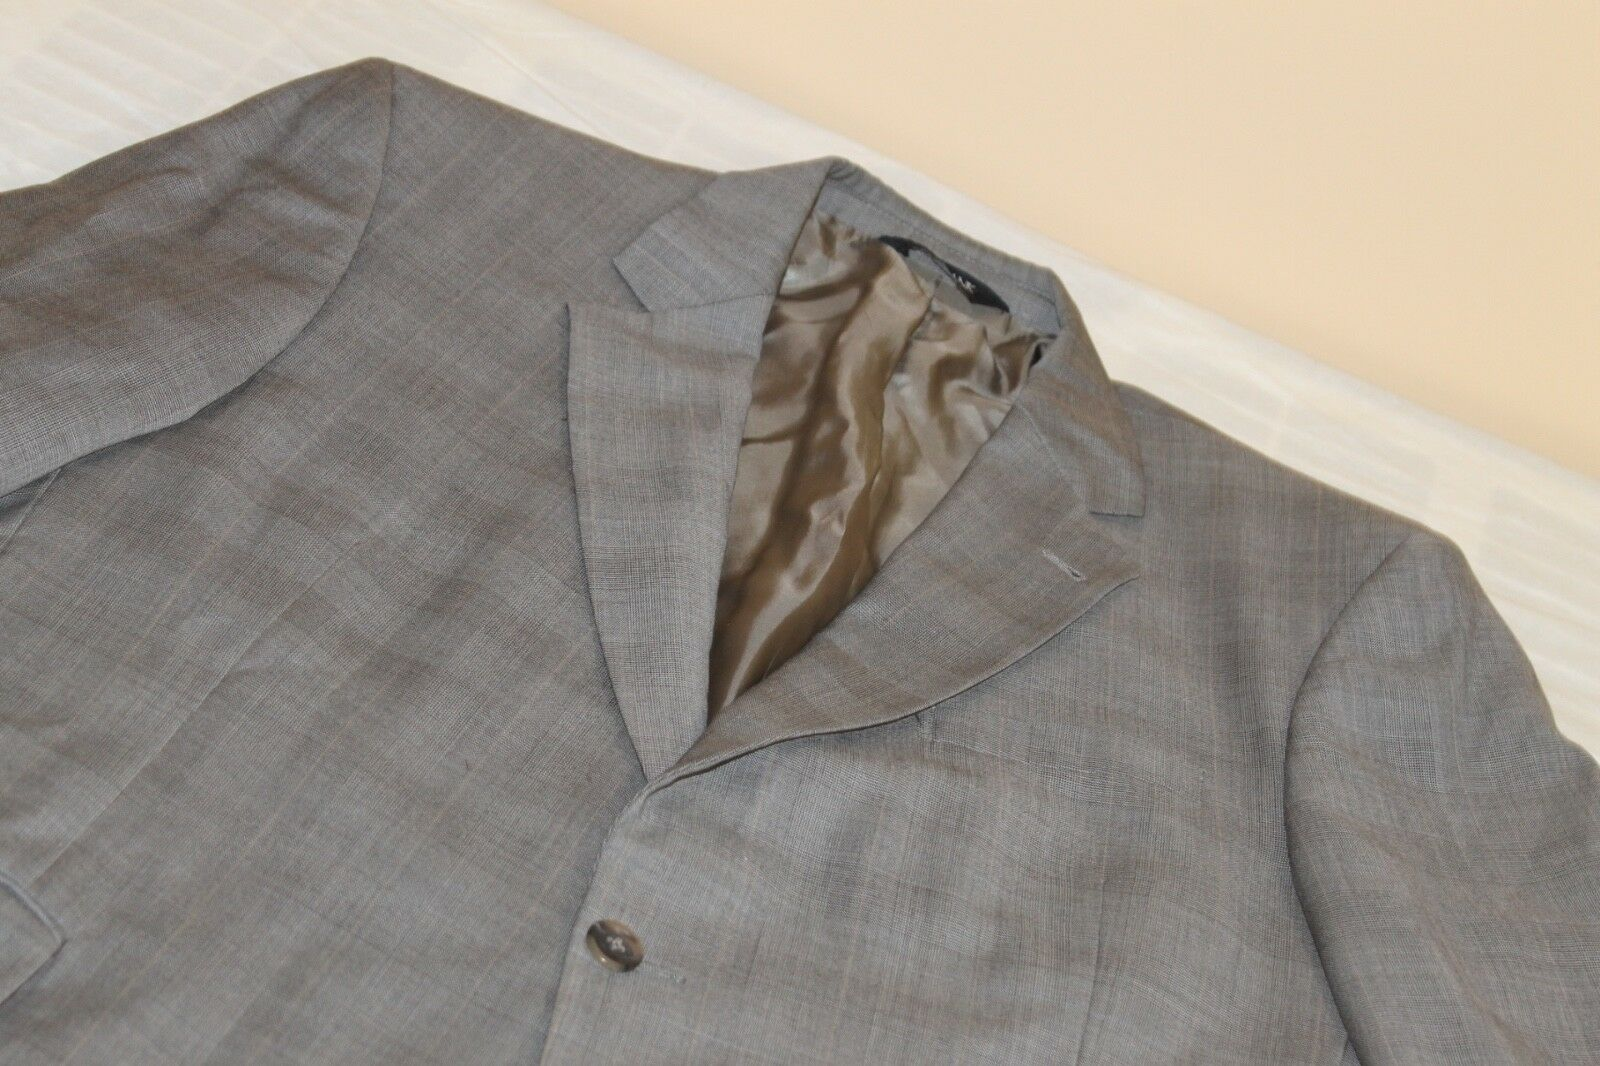 JOS A BANK SIGNATURE COLLECTION grau Plaid Suit 43 R 100% Wool